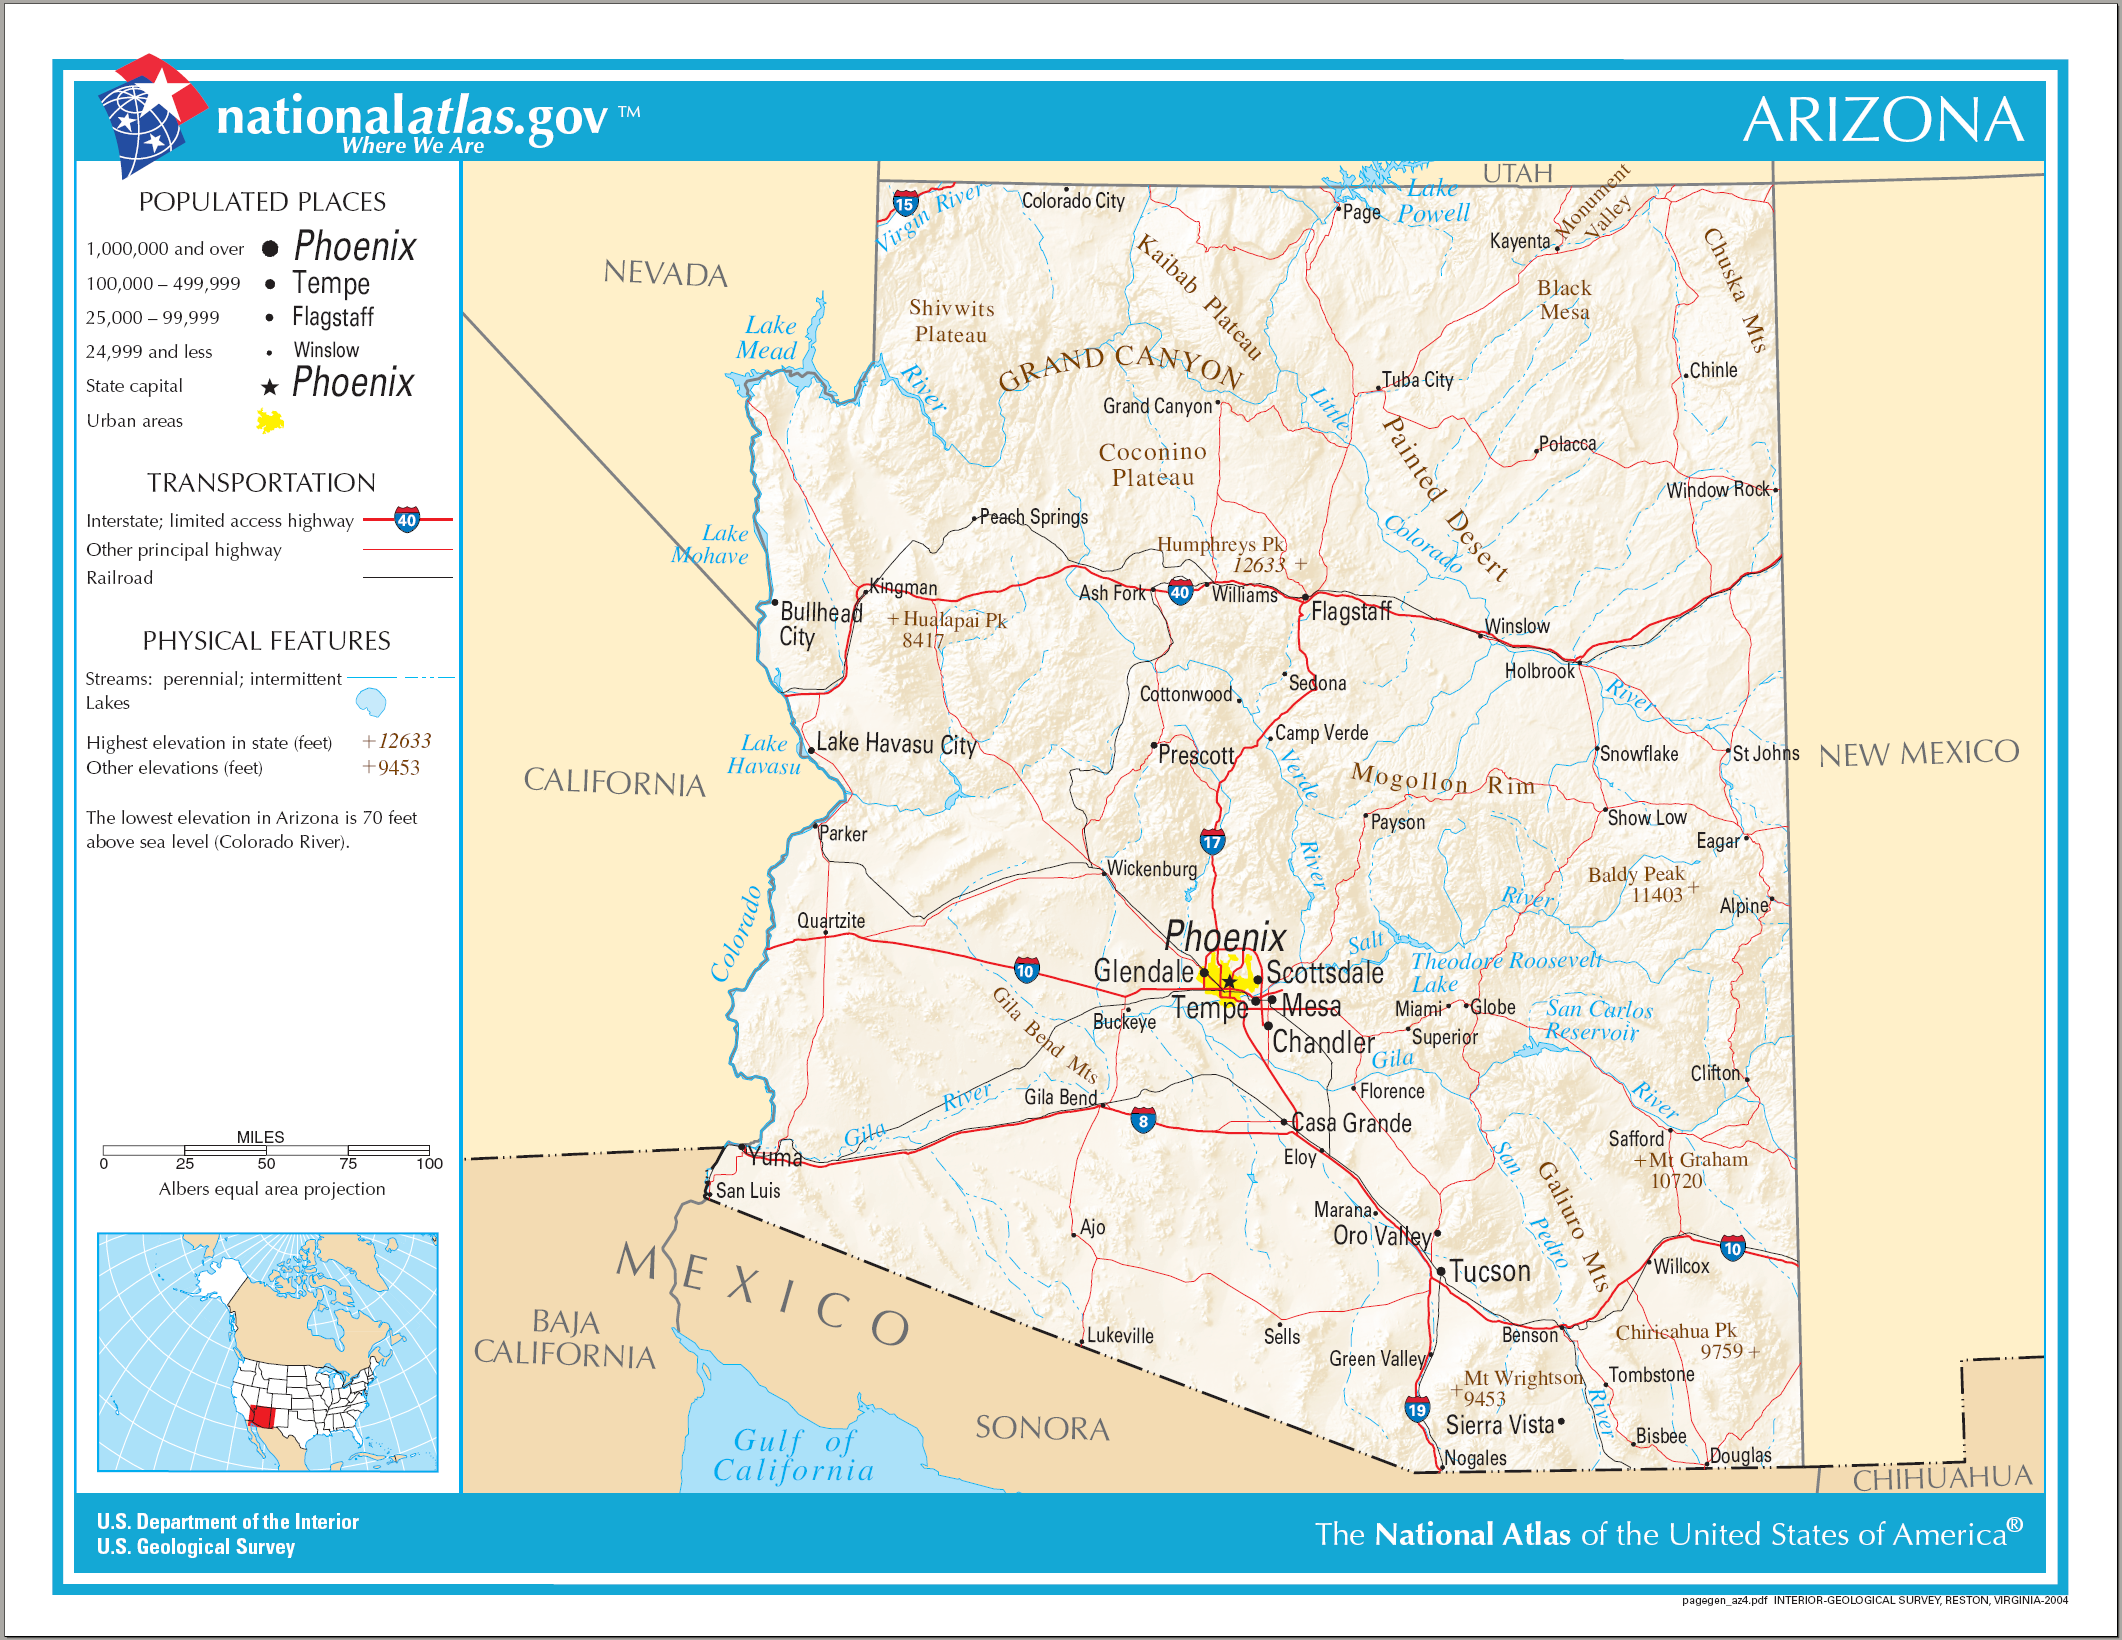 http://upload.wikimedia.org/wikipedia/commons/8/8c/Map_of_Arizona_NA.png